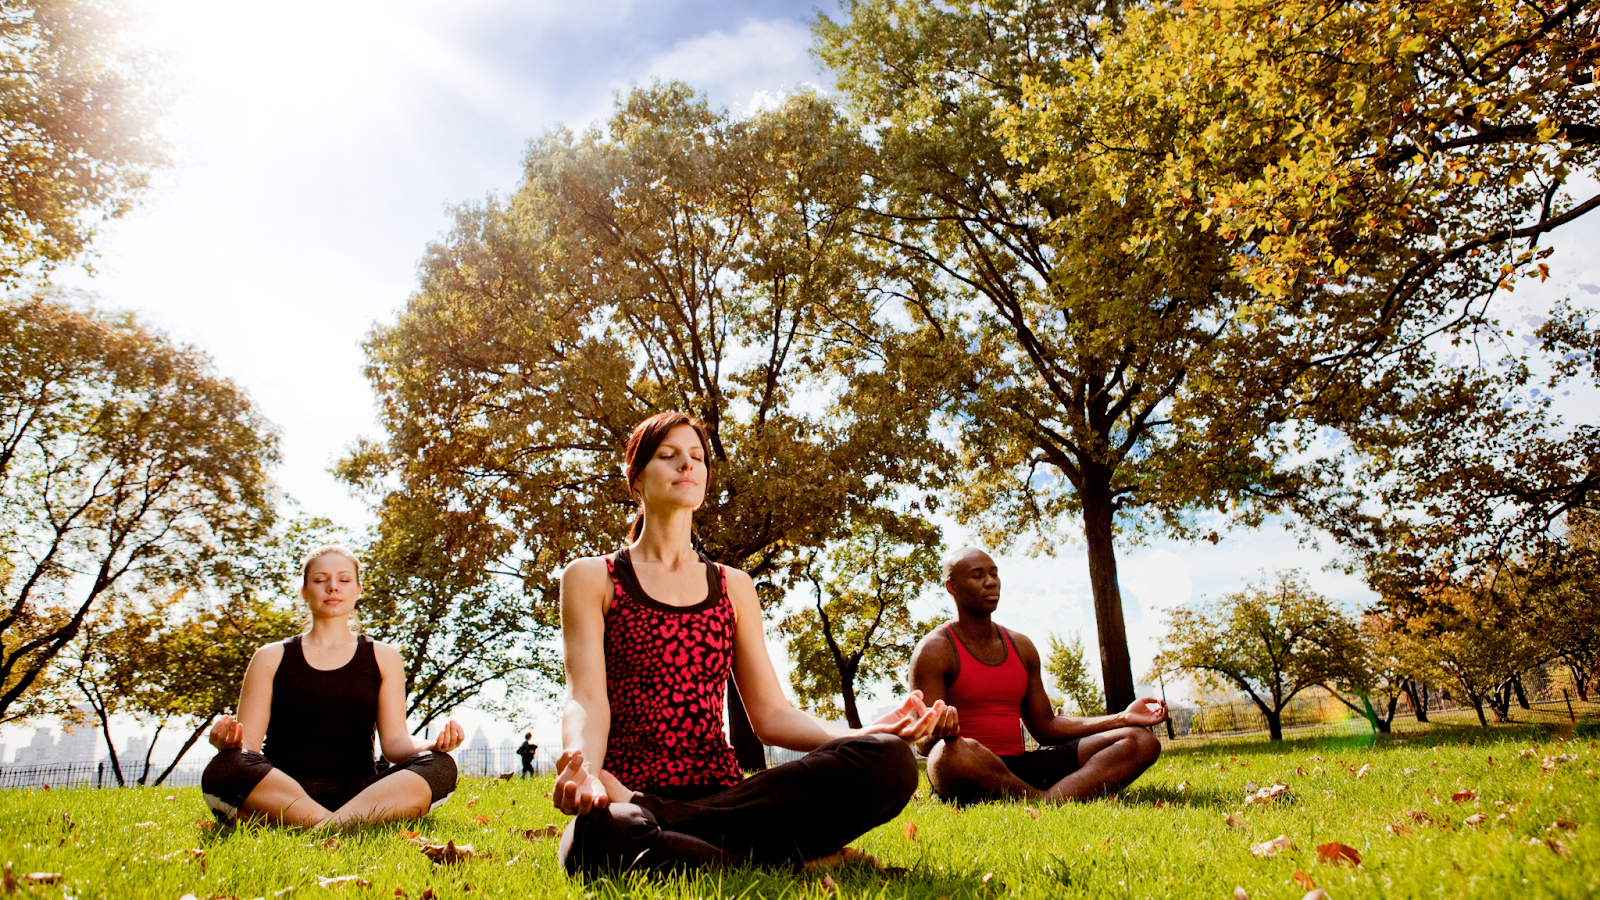 Three individuals do yoga in the park